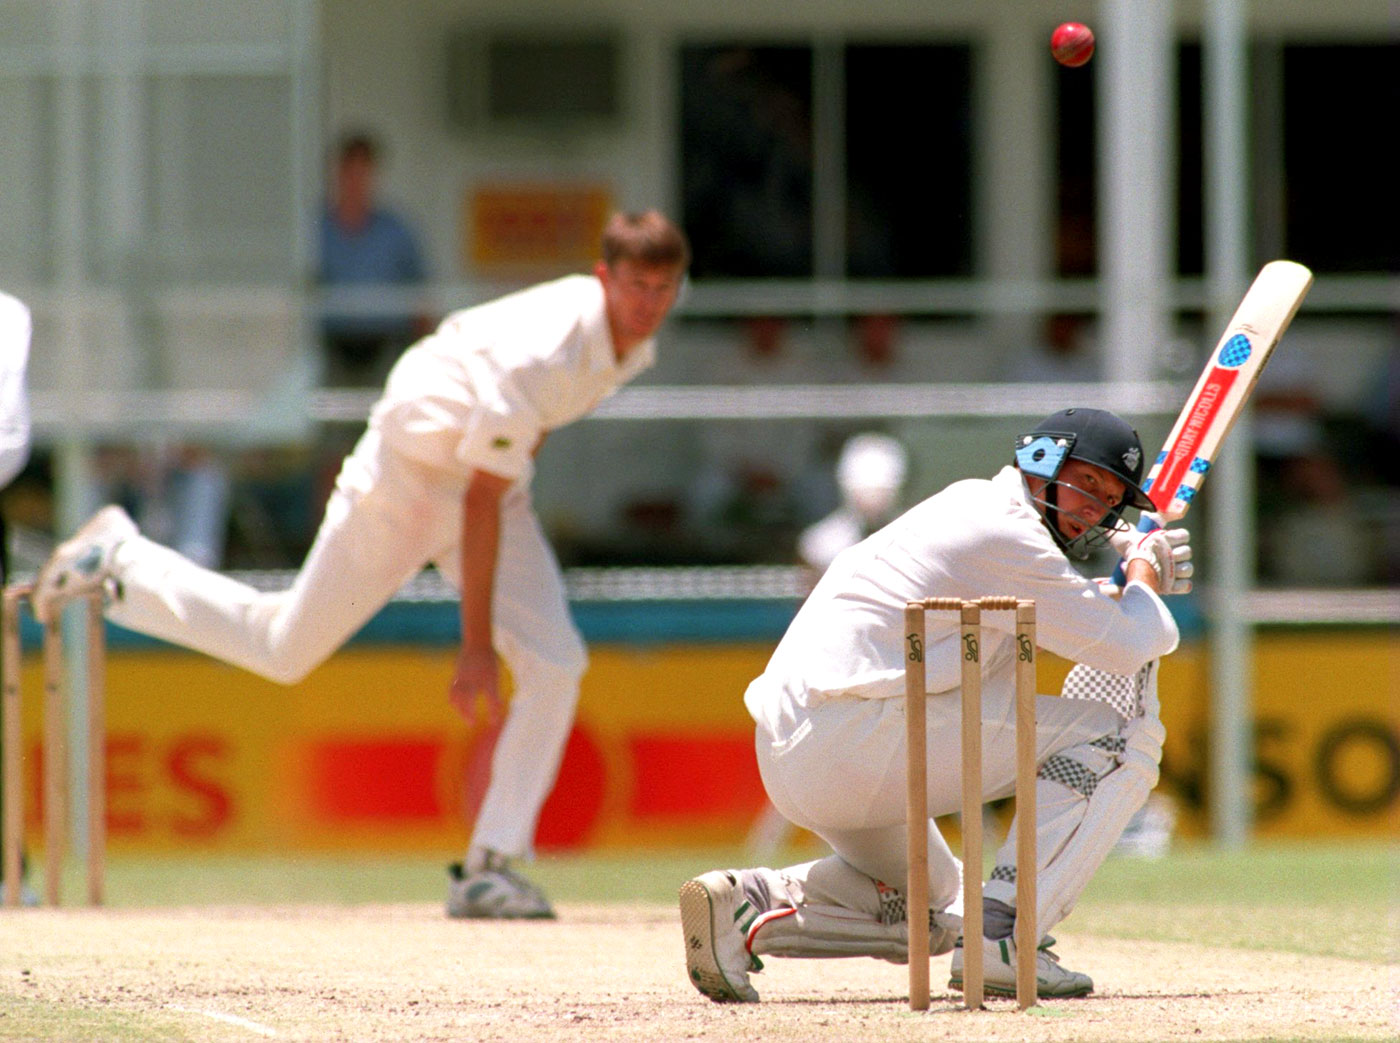 Mike Atherton often was at the receiving end of McGrath's early inconsistency